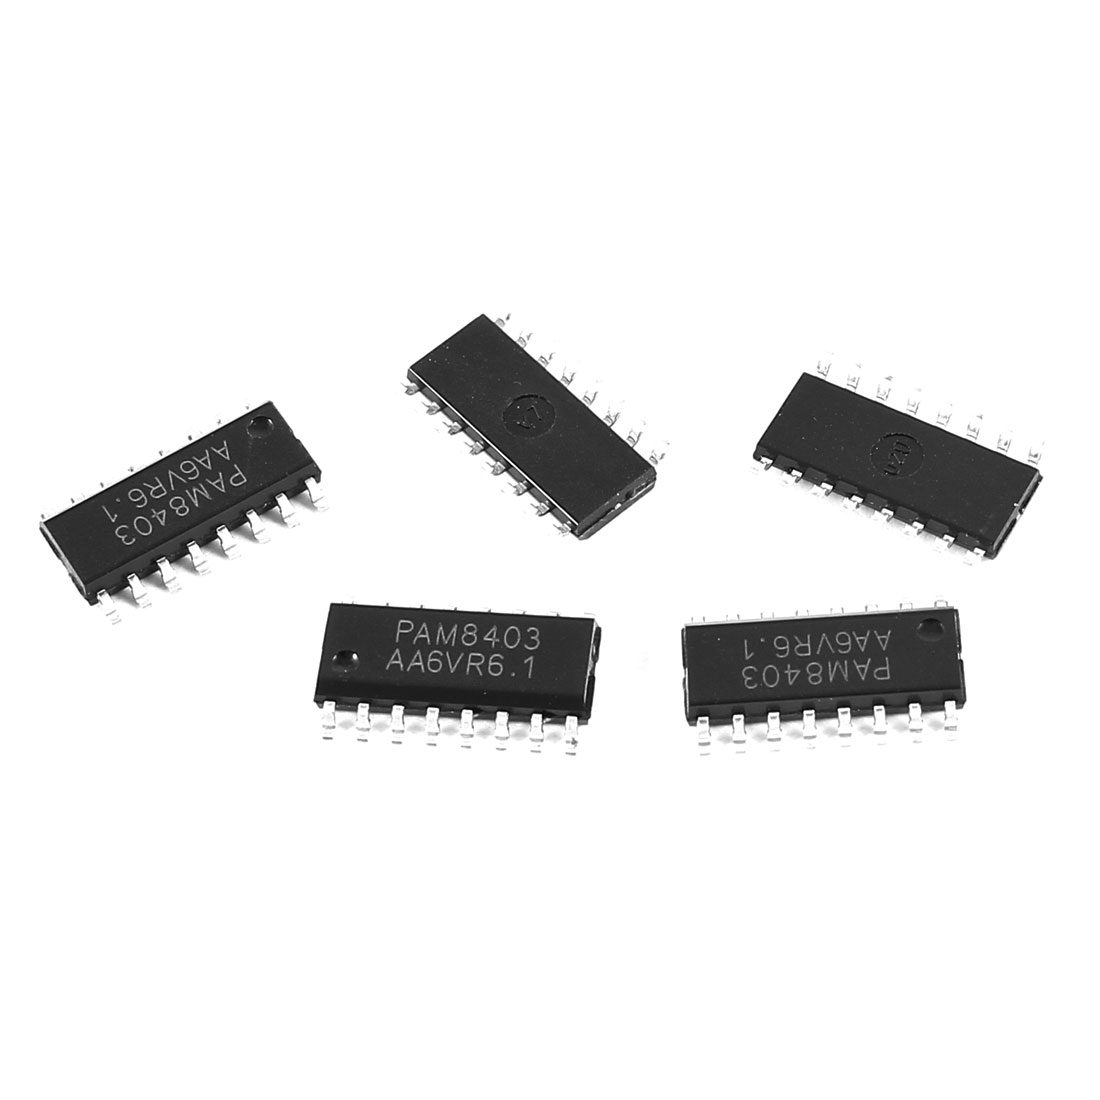 5 Pcs PAM8403 Electronic SMD SMT SOP-16 2 Channels 3W Stereo Filterless Class D Audio Amplifier IC